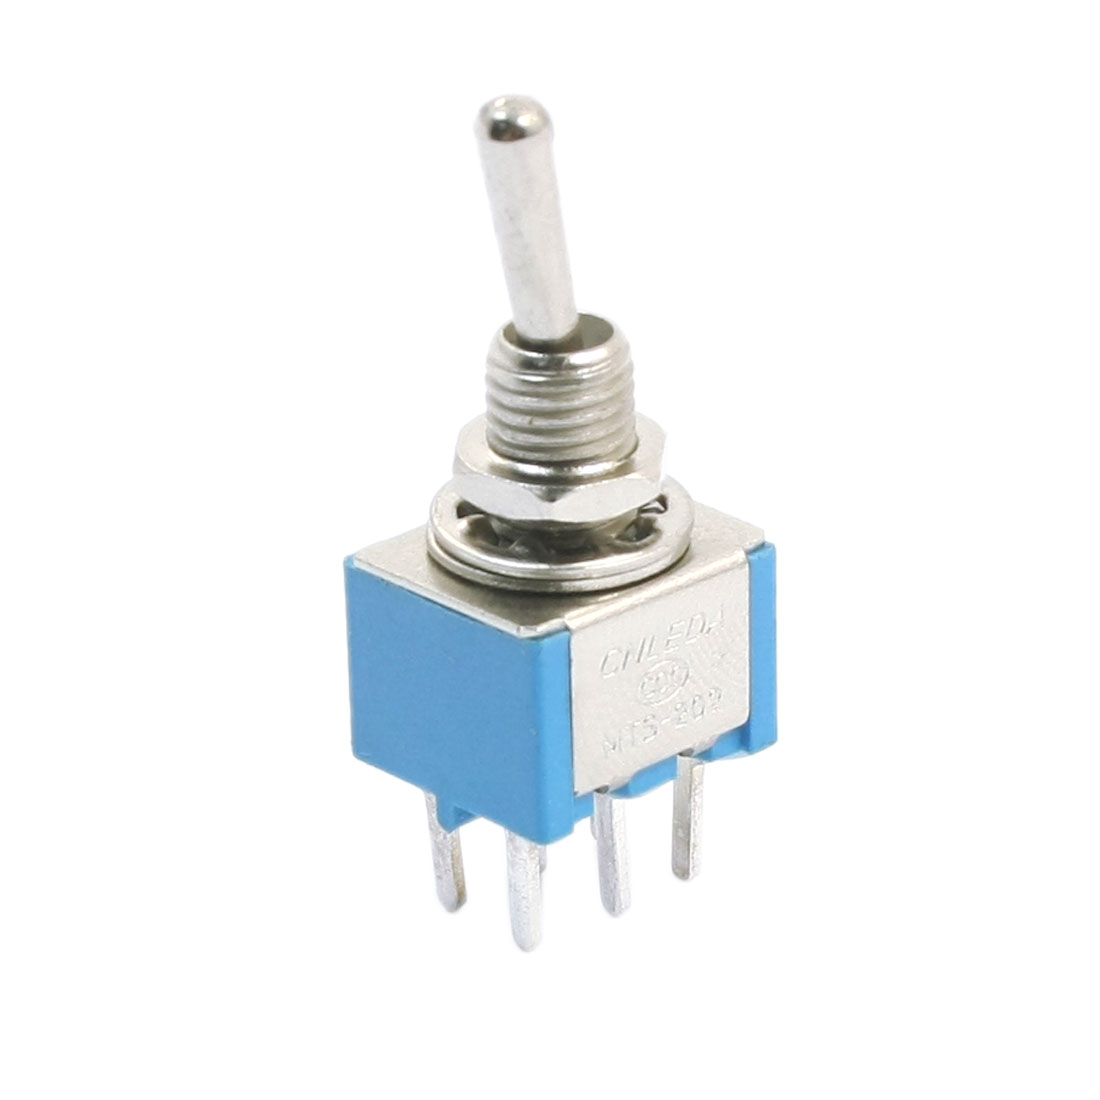 6mm Panel Mounted 6 Pin ON/OFF/ON DPDT Toggle Switch AC 125V 6A Blue